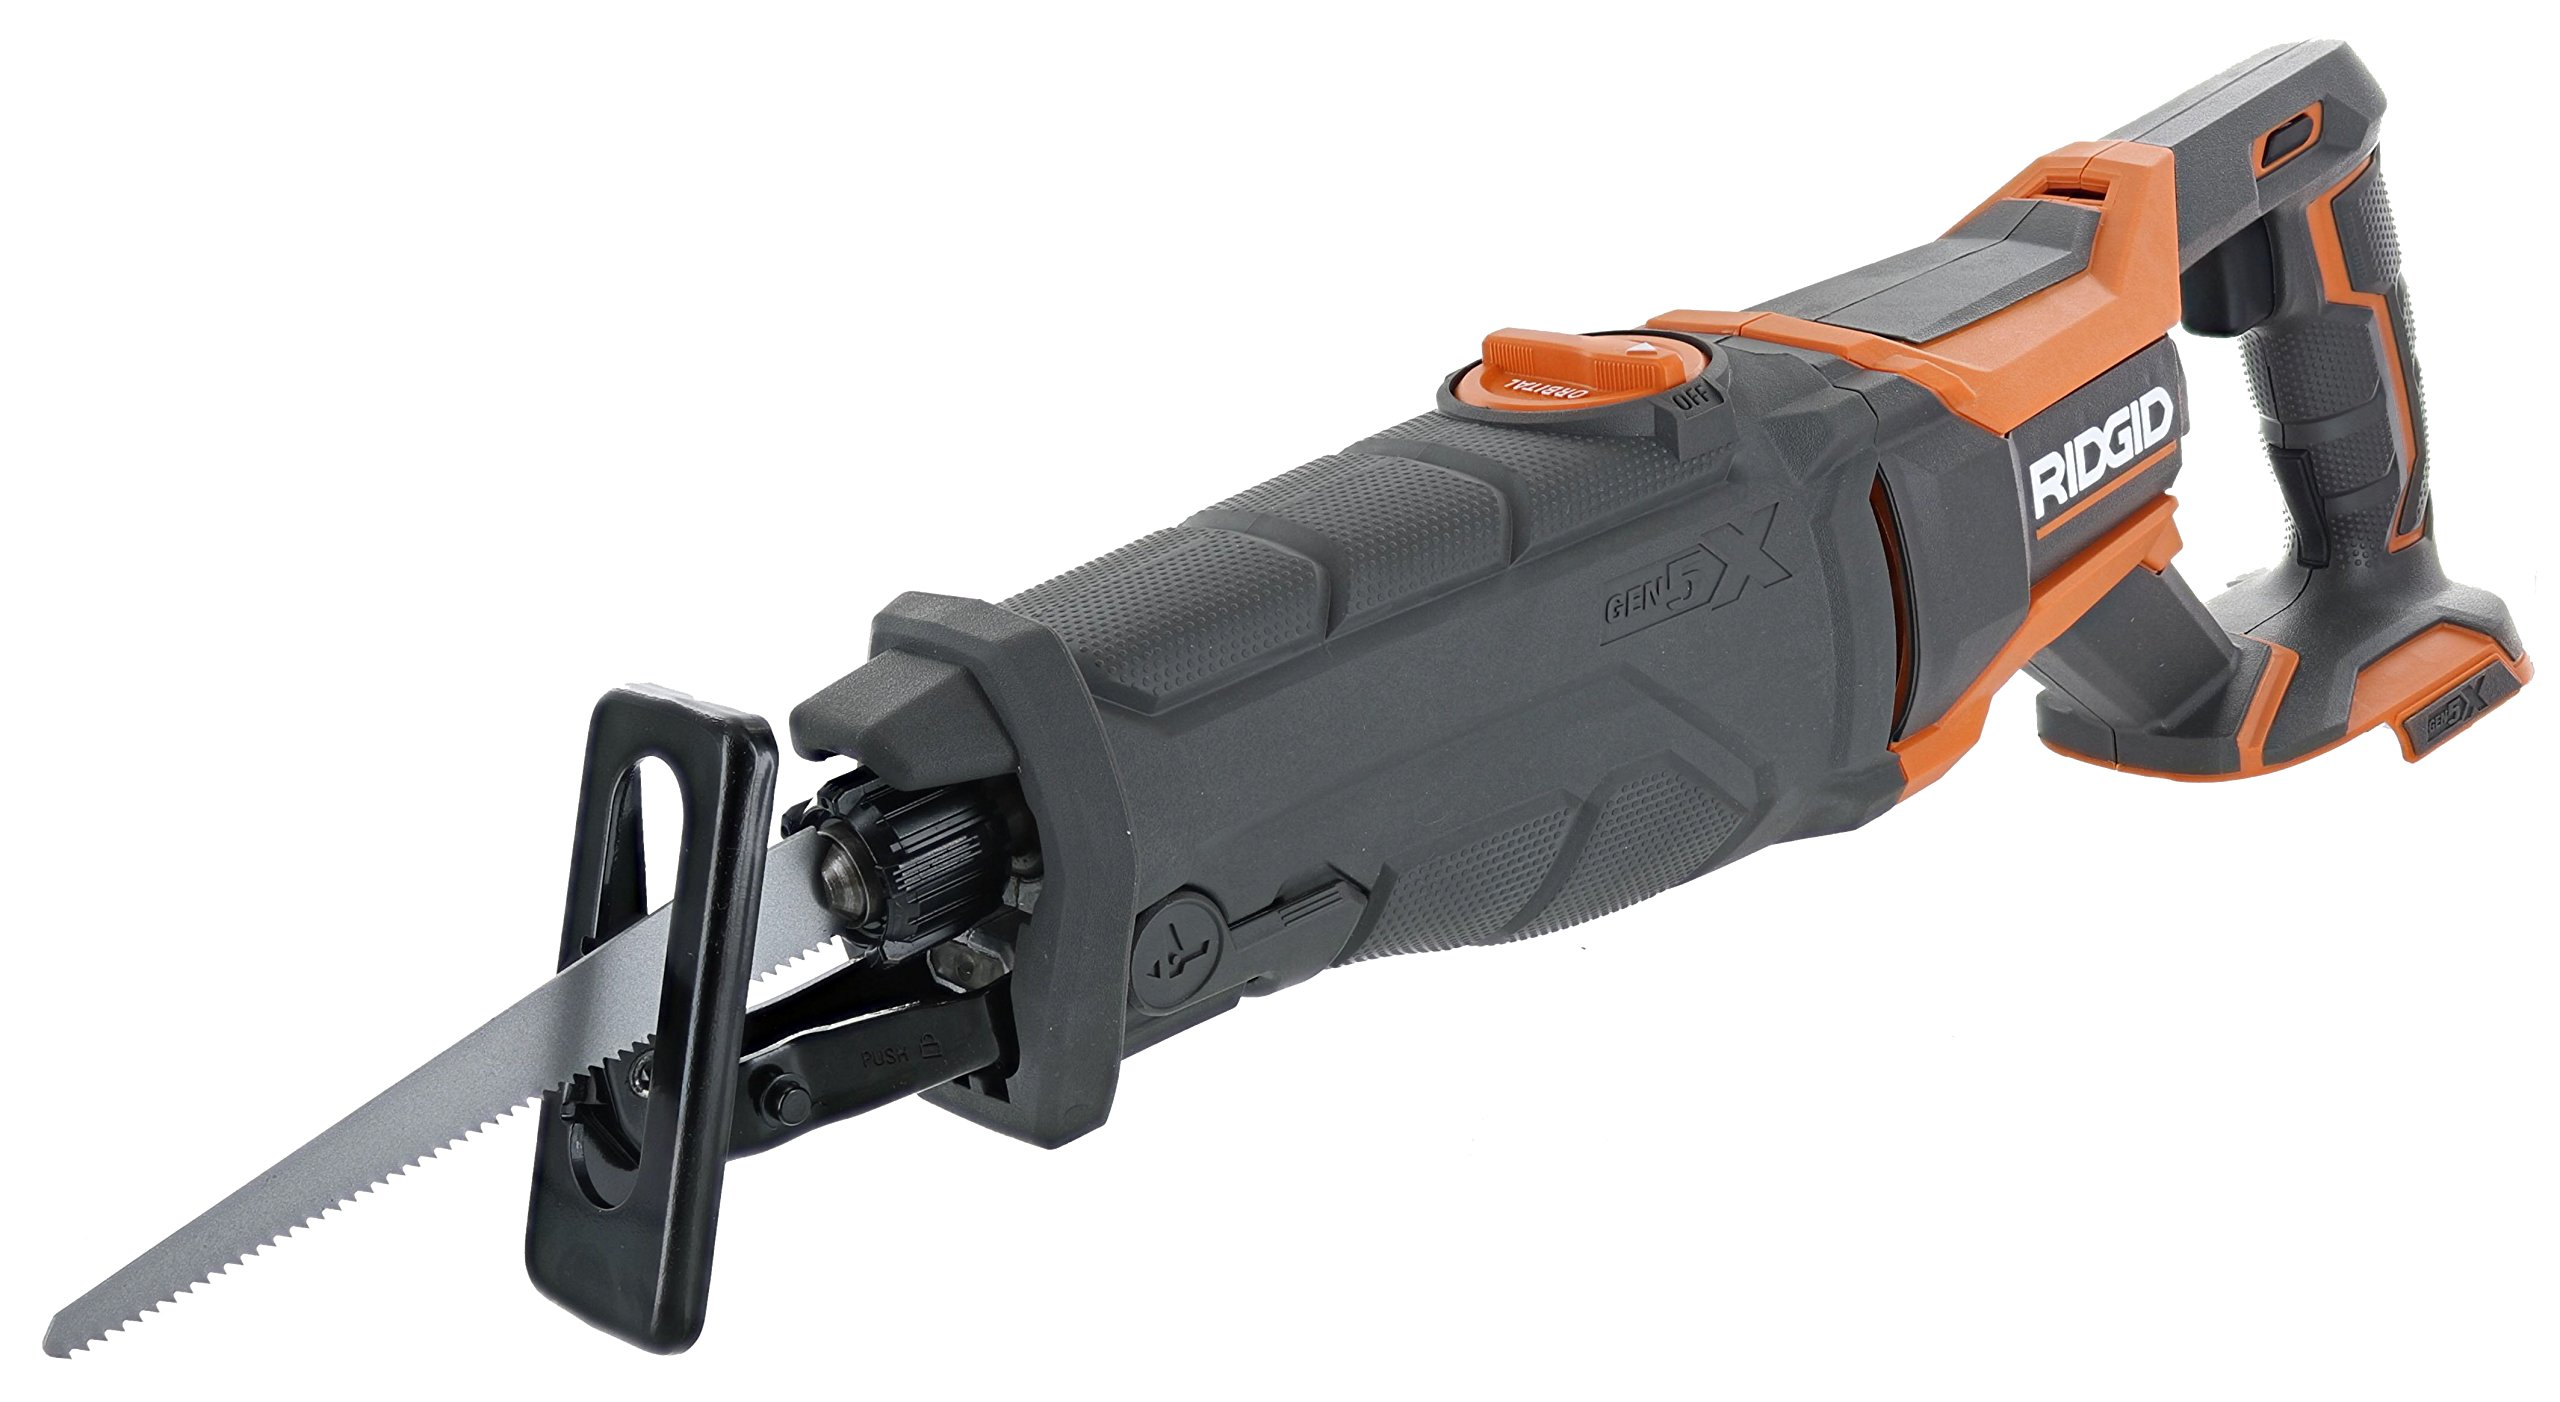 Ridgid R8642 Gen5X 18V Lithium Ion Cordless Reciprocating Saw with Tool-Free Blade Changing,  Sight Line Blowing, and Variable Orbital Settings (Battery Not Included, Tool Only) by Ridgid